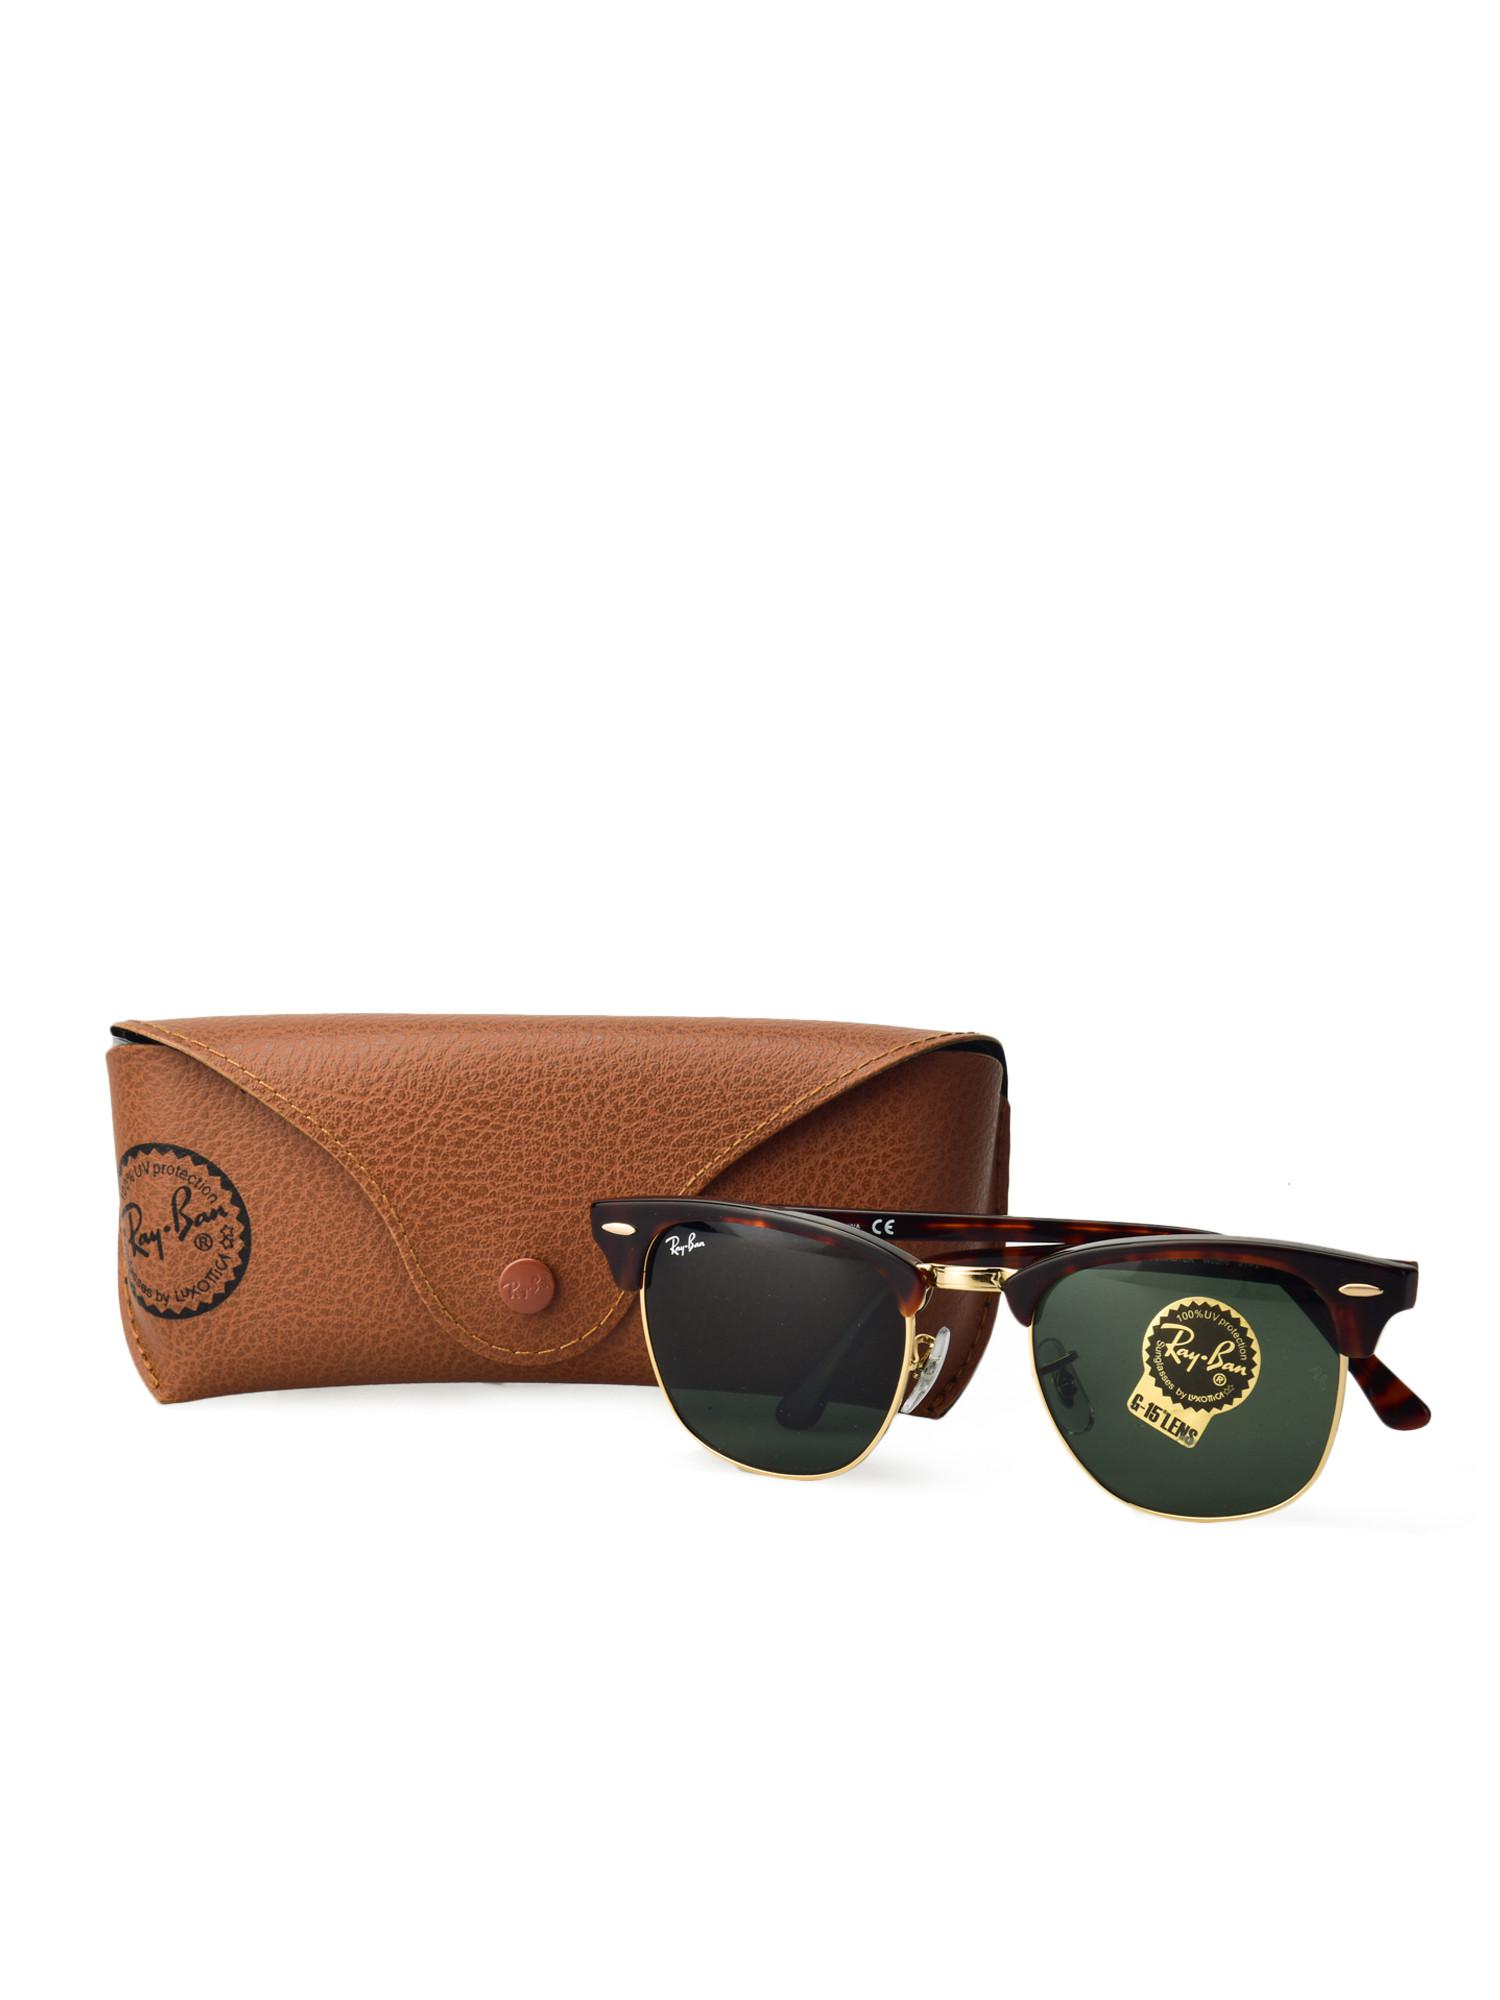 83b77f30cf NEW RAY BAN RB3016 W0366 Tortoise Clubmaster Sunglasses G 15 Green Source ·  Gallery